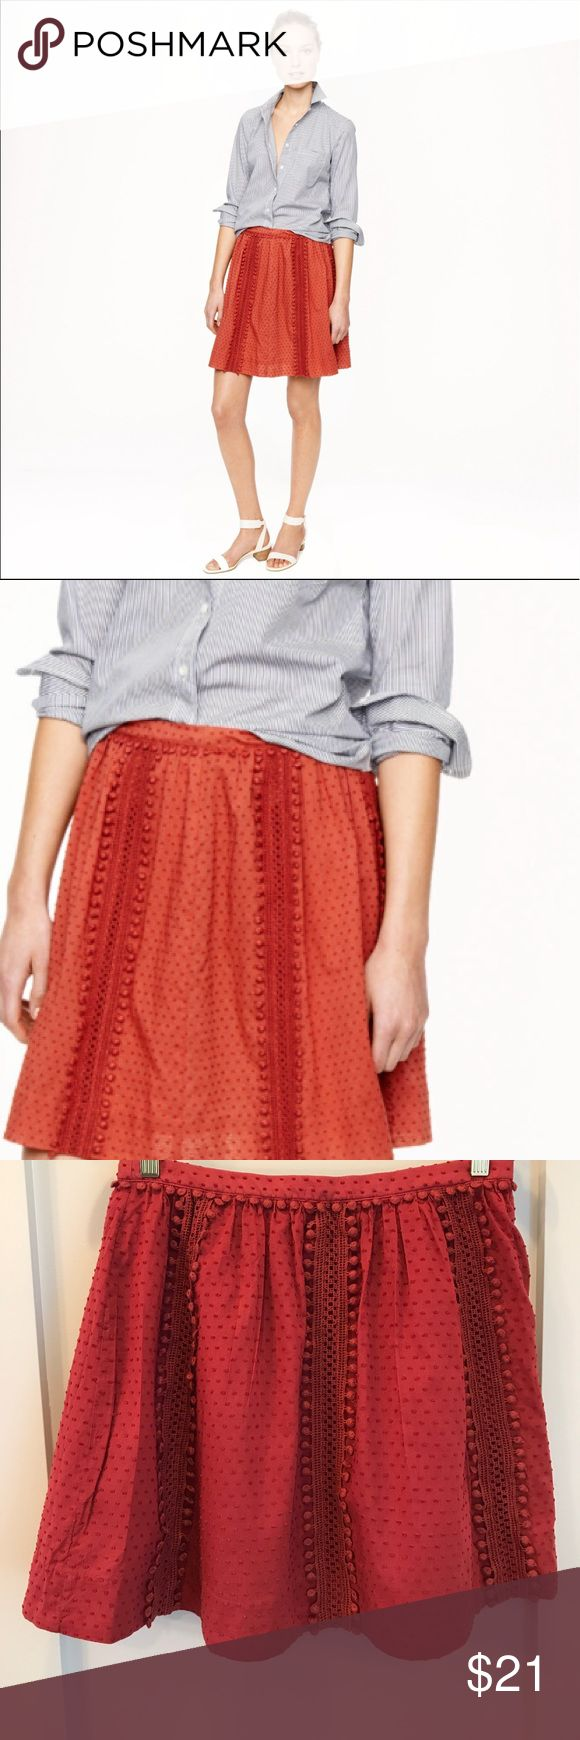 """J Crew Swiss Dot Pom Pom Skirt Size 3 Skirt sits above the hip. 17.5"""" long. An easy feminine silhouette with trim that makes us smile. Developed by our in-house embellishment team, it adds a pop of personality to airy swiss dots.  Cotton. Side zip. J. Crew Skirts"""